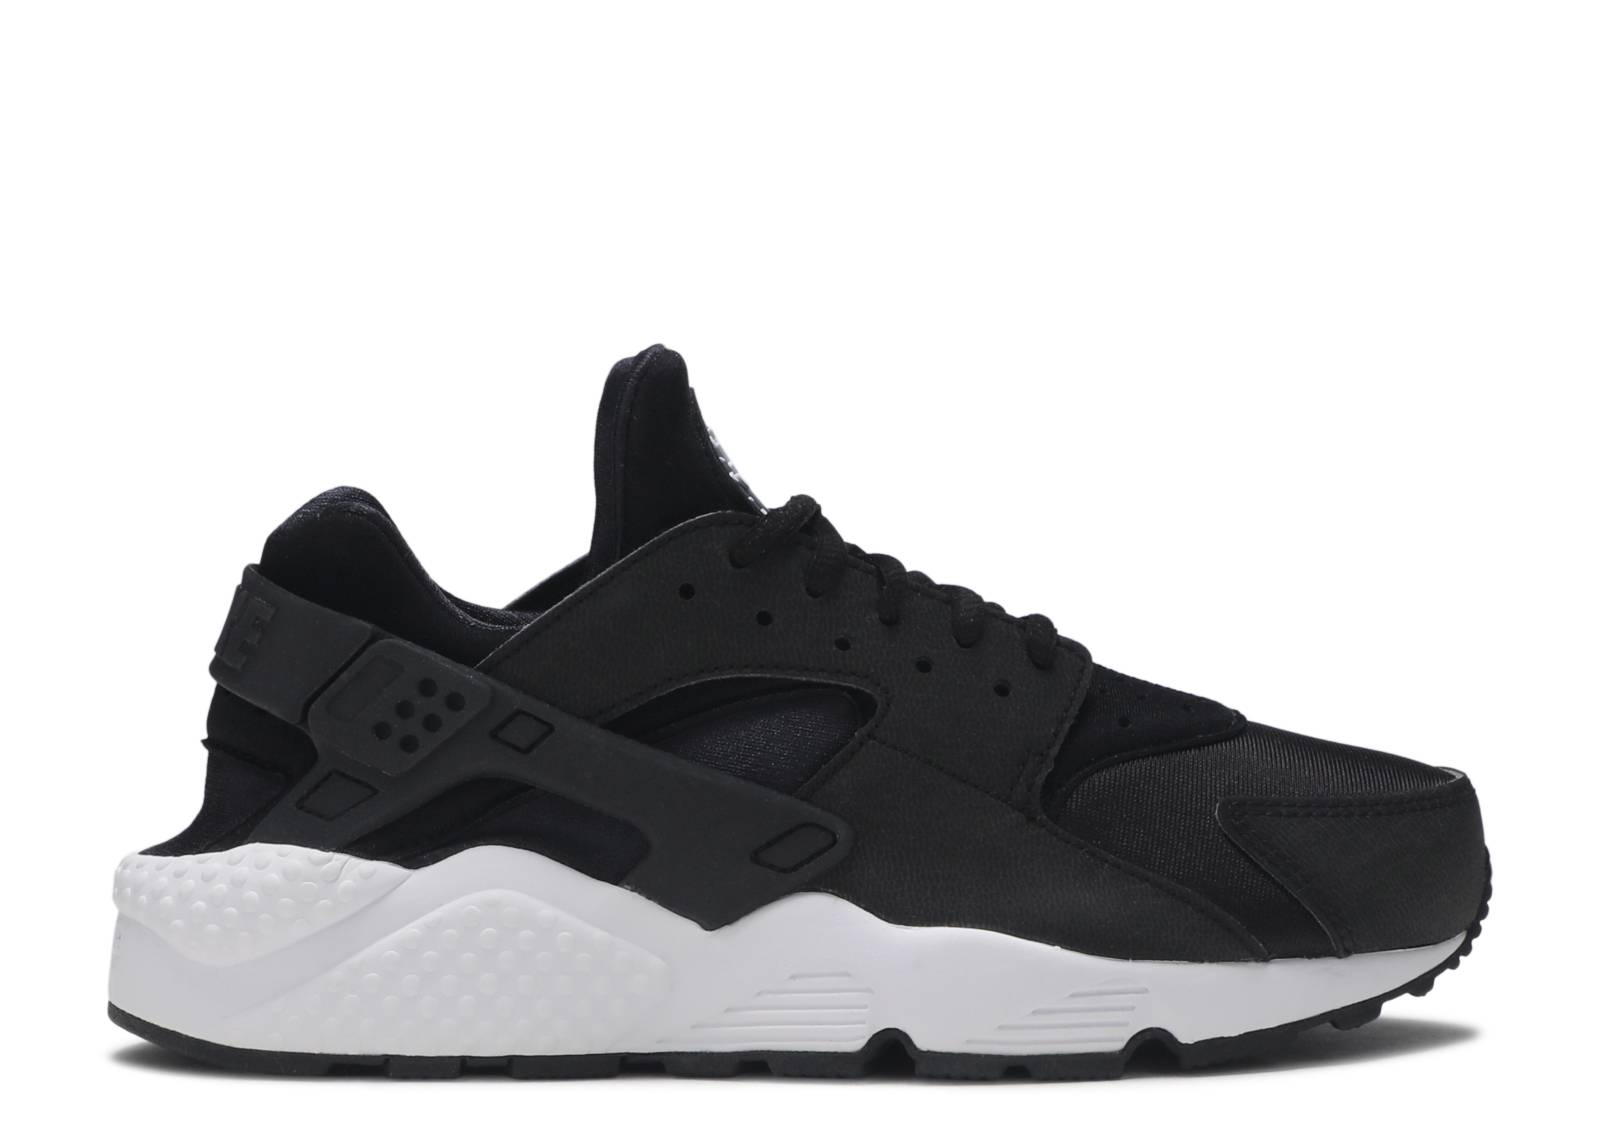 42198ab950e4 Nike Huaraches Shoes for Women   Men